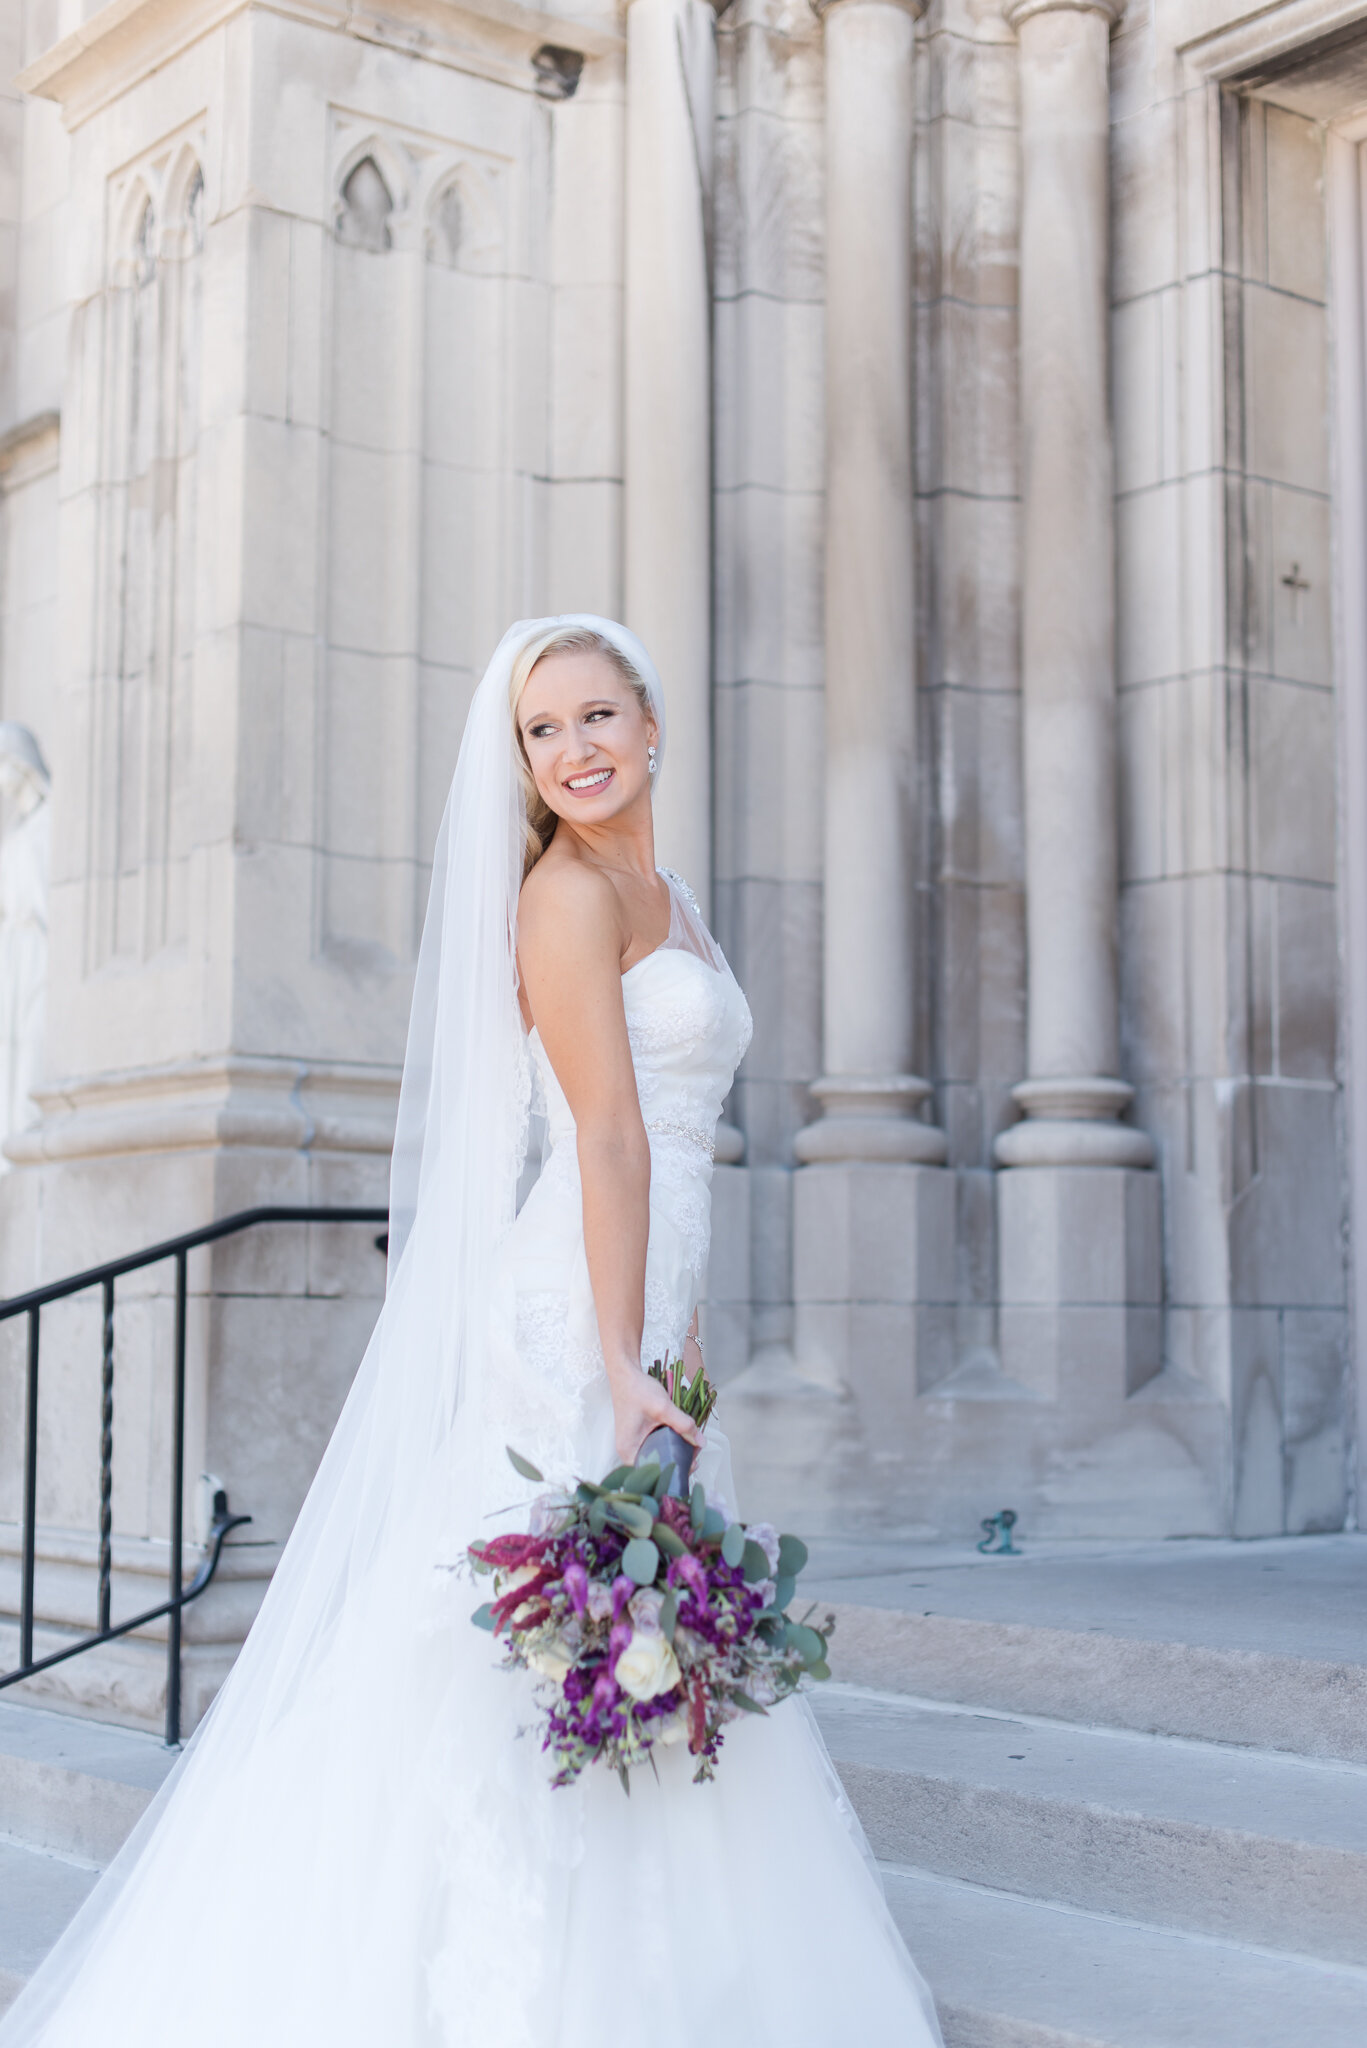 Downtown Indianapolis Wedding at Cyrus Place6541.jpg